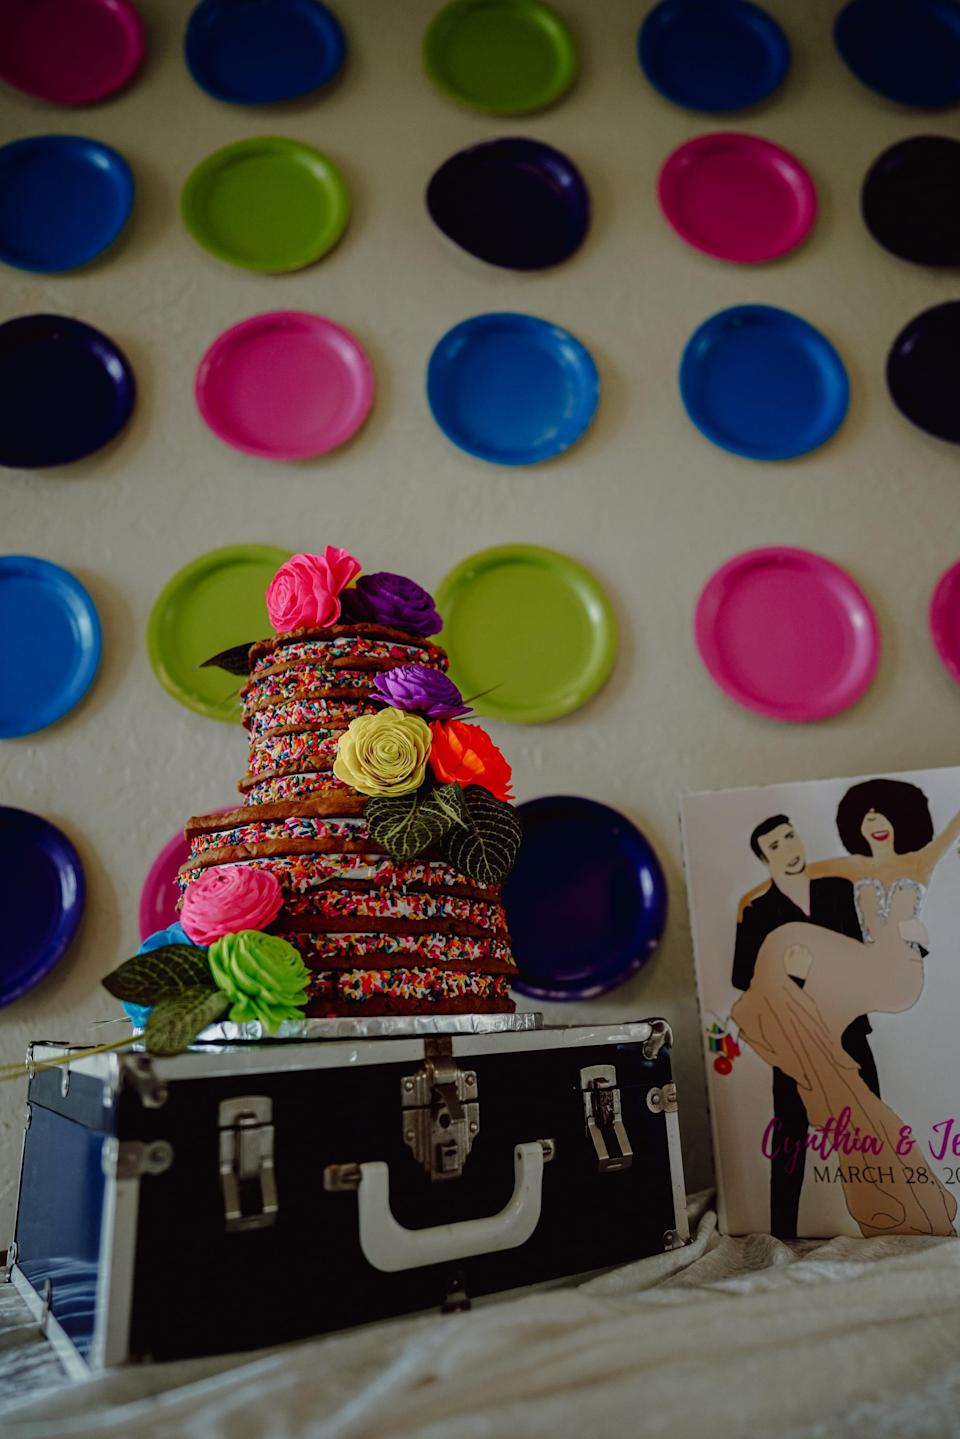 <p>Want to make a really easy photo wall in no time? Just grab some paper plates and glue, and you're ready to go! Stick the plates to a wall, and enjoy a funky and affordable backdrop all night long.</p>